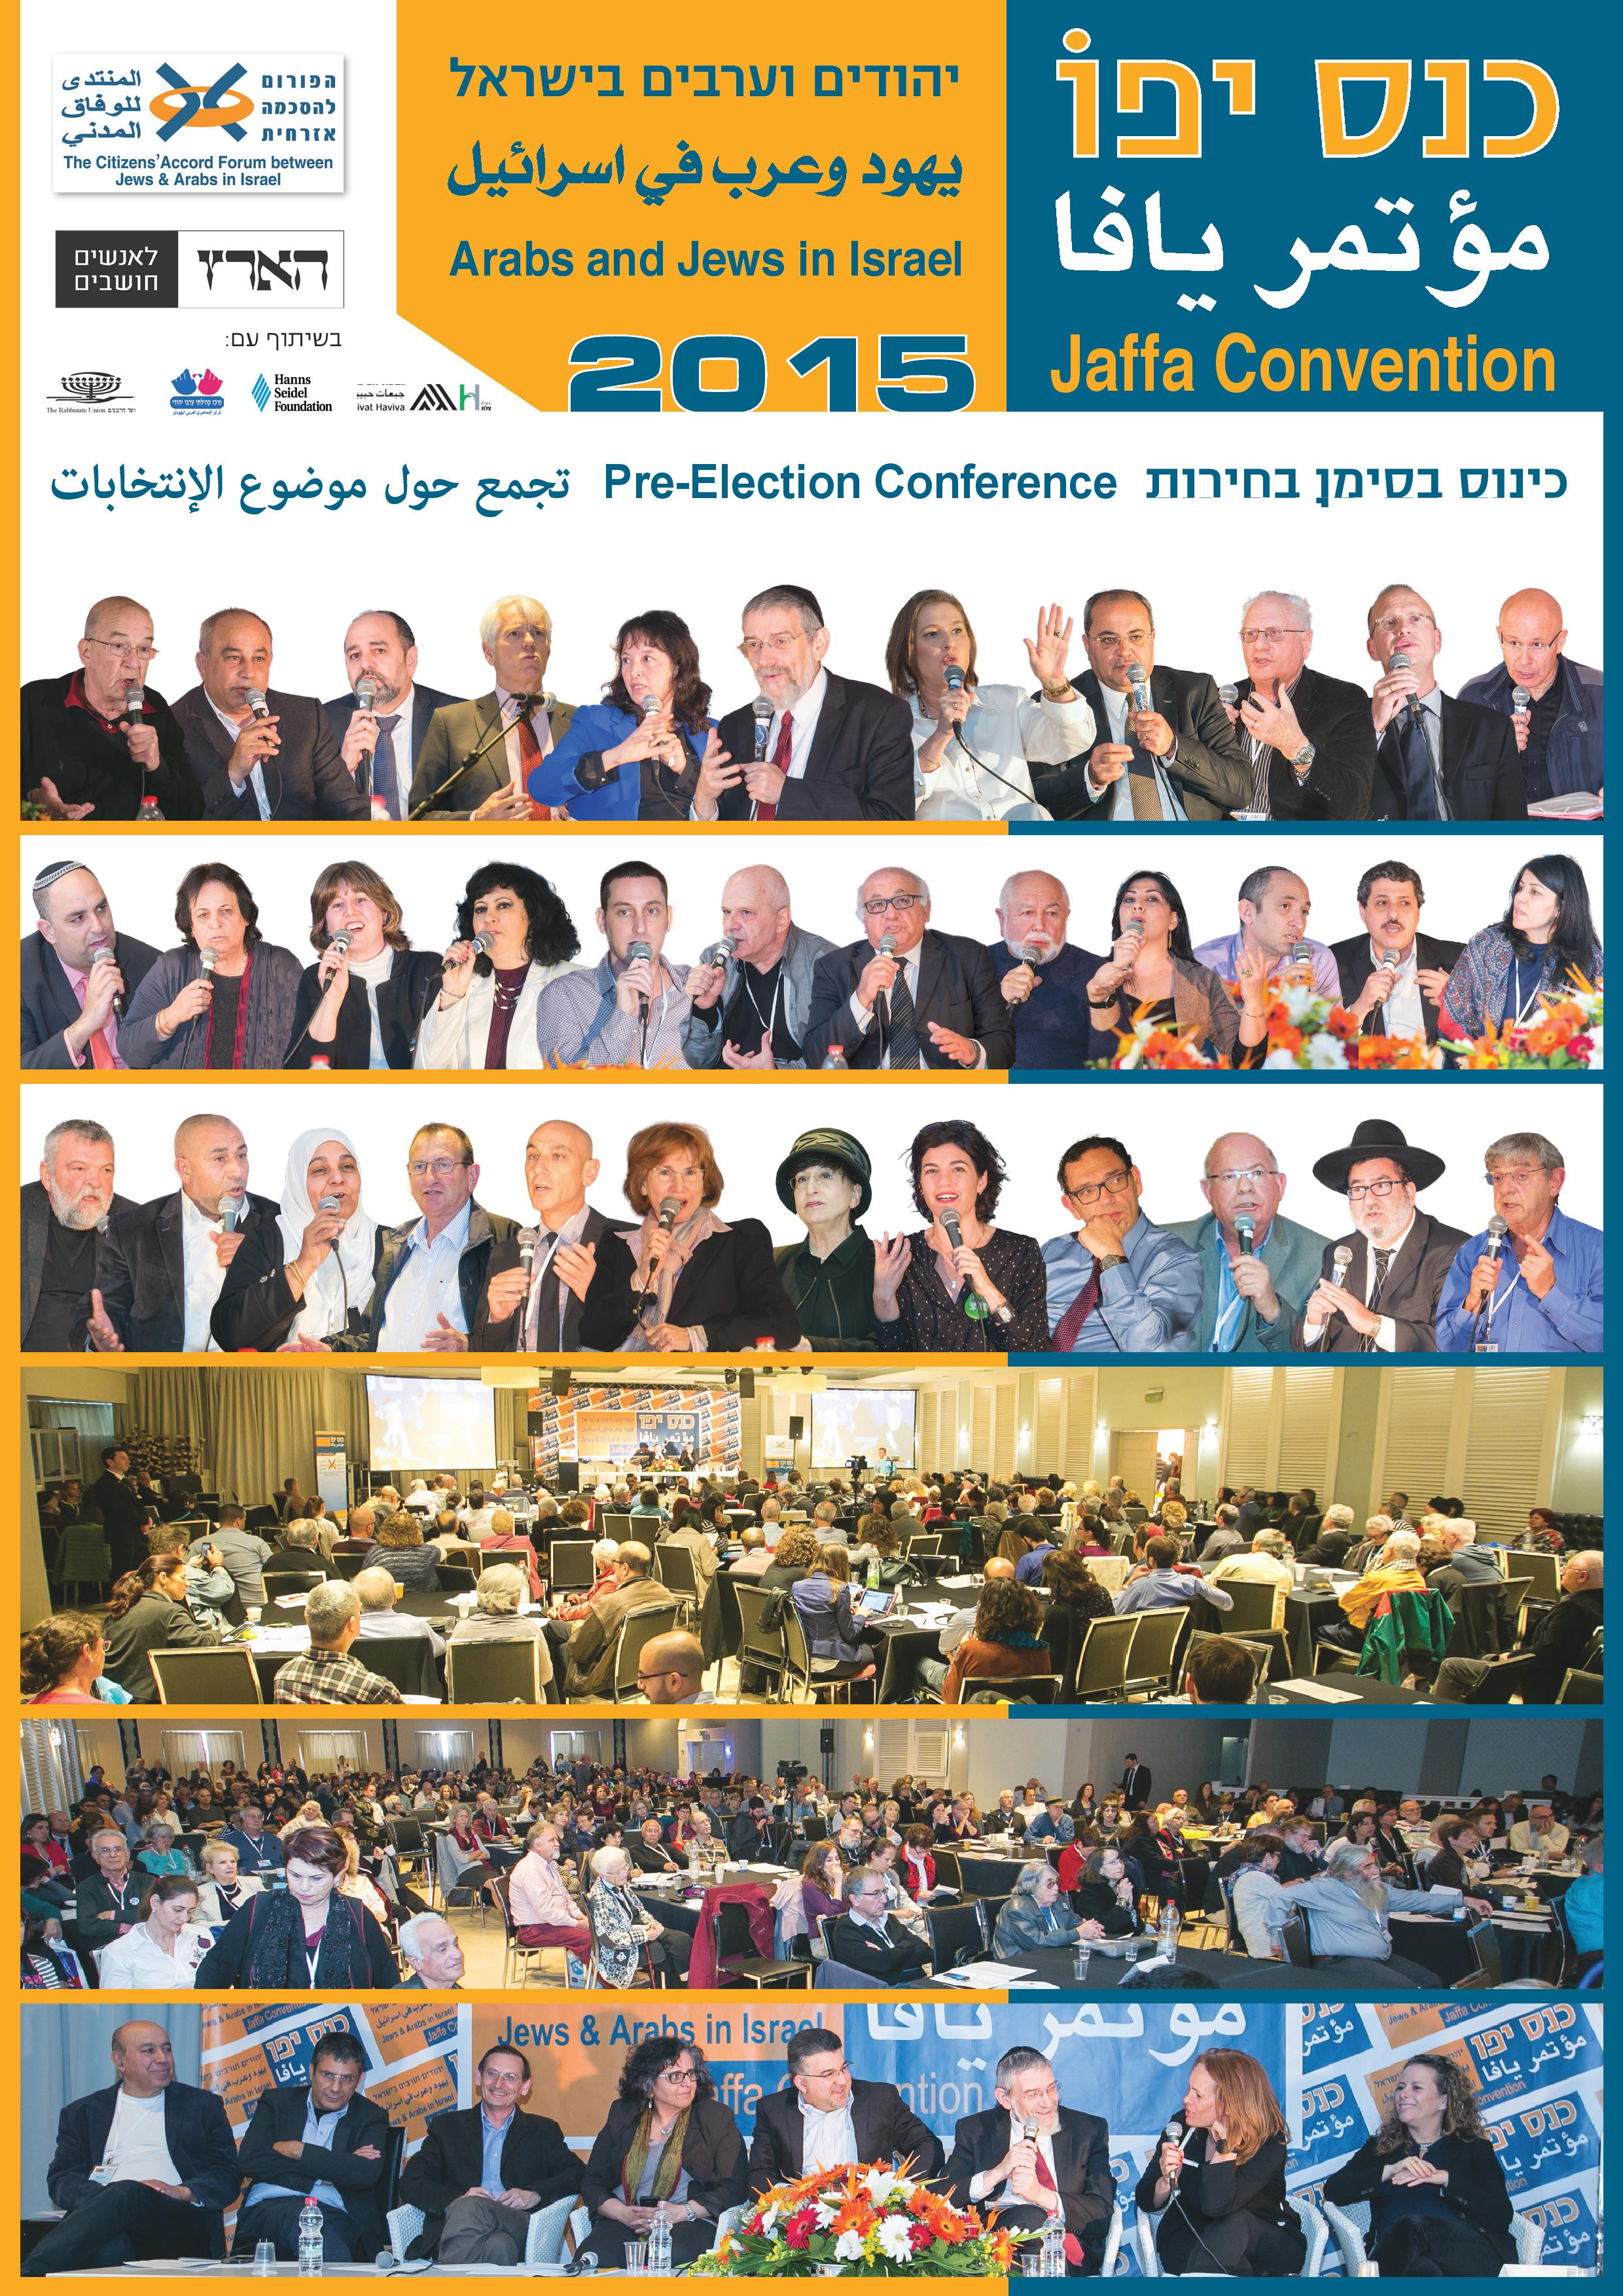 Jaffa Convention 2015